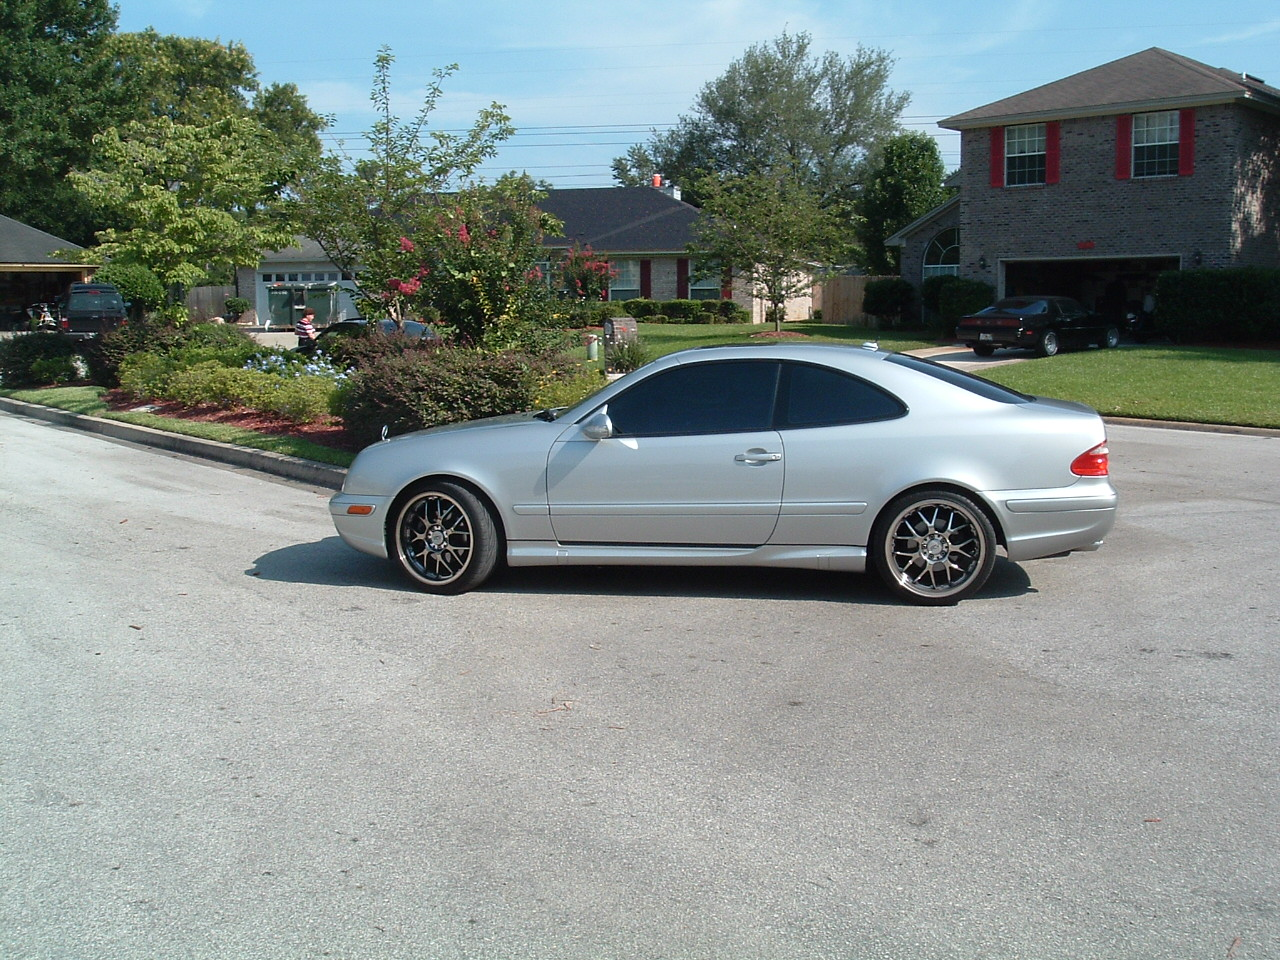 Discount Tire Direct >> Widest tires that fit on 2001 clk 430? - Mercedes-Benz Forum